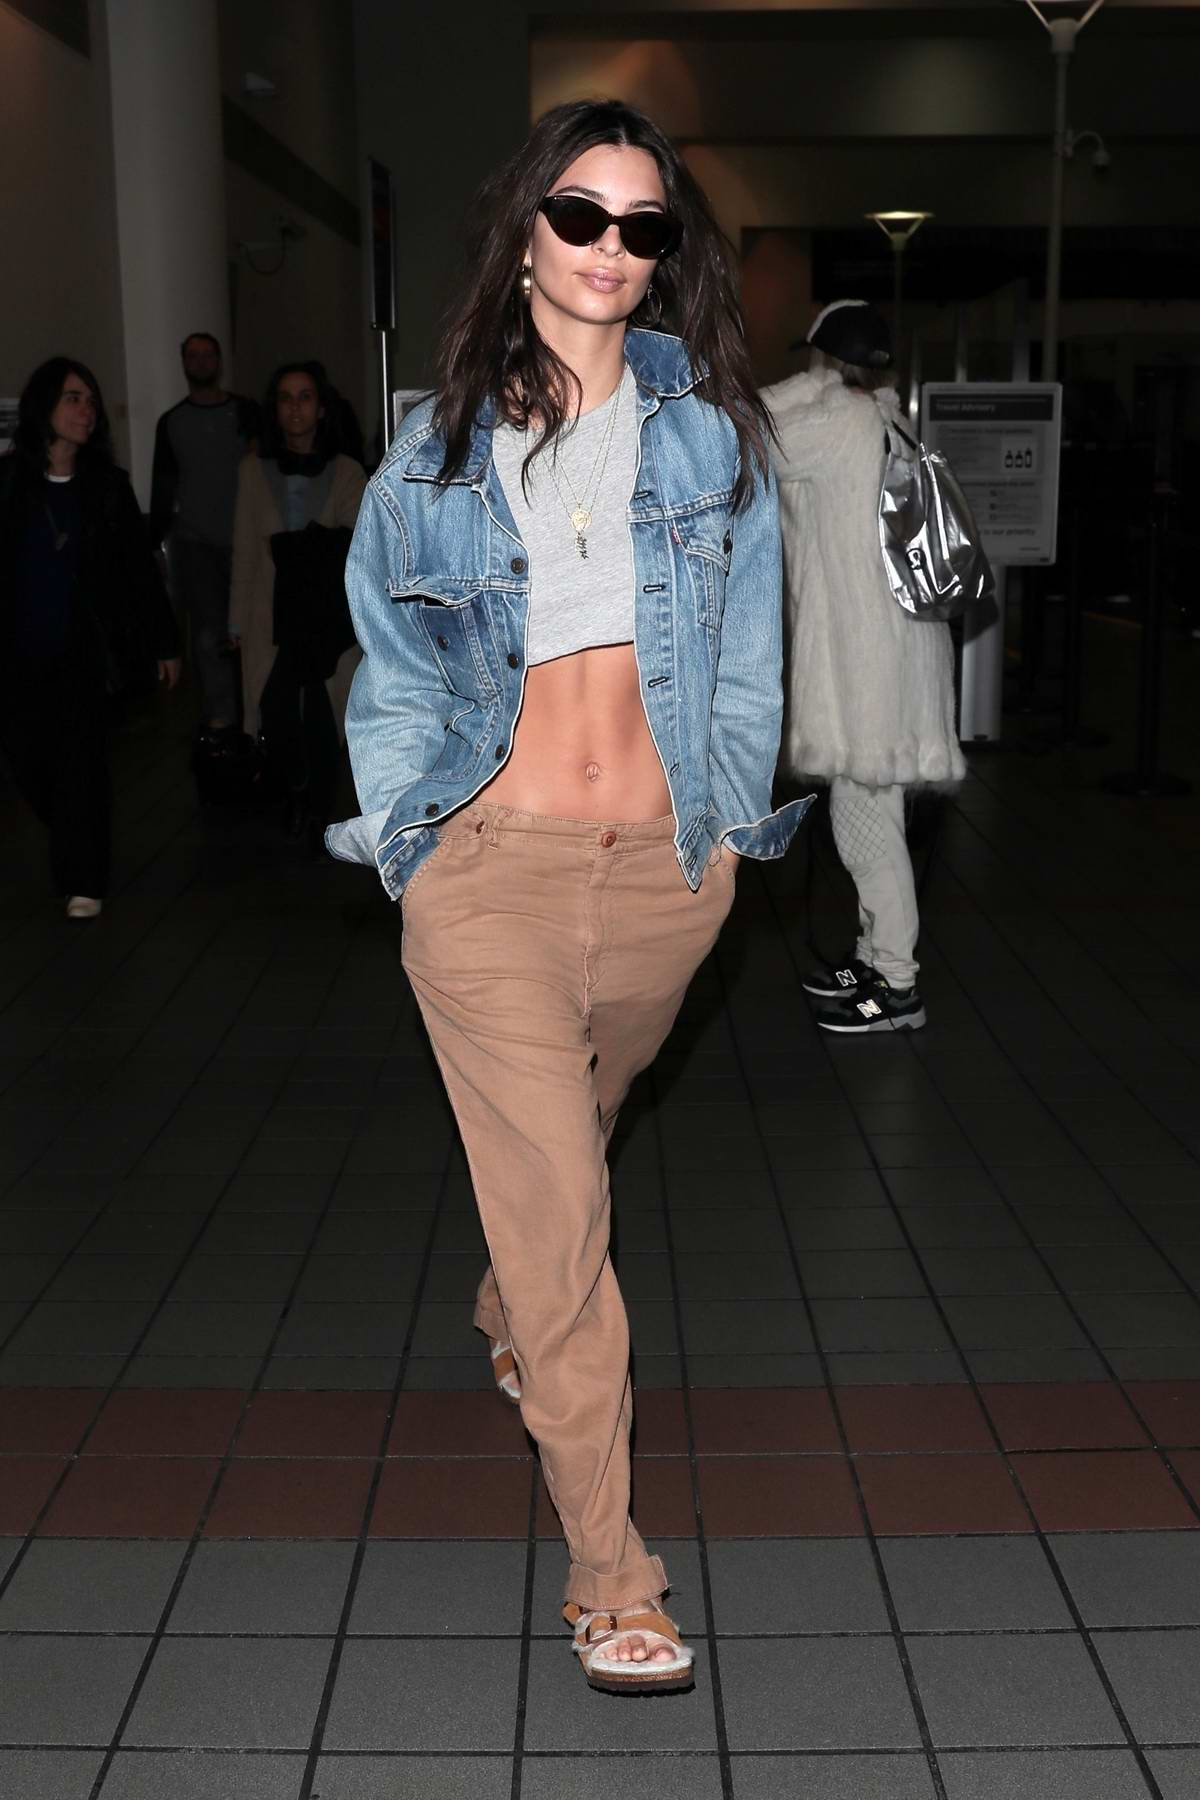 Emily Ratajkowski shows off her toned abs in a grey crop top with a denim jacket as she touch down at LAX airport, Los Angeles